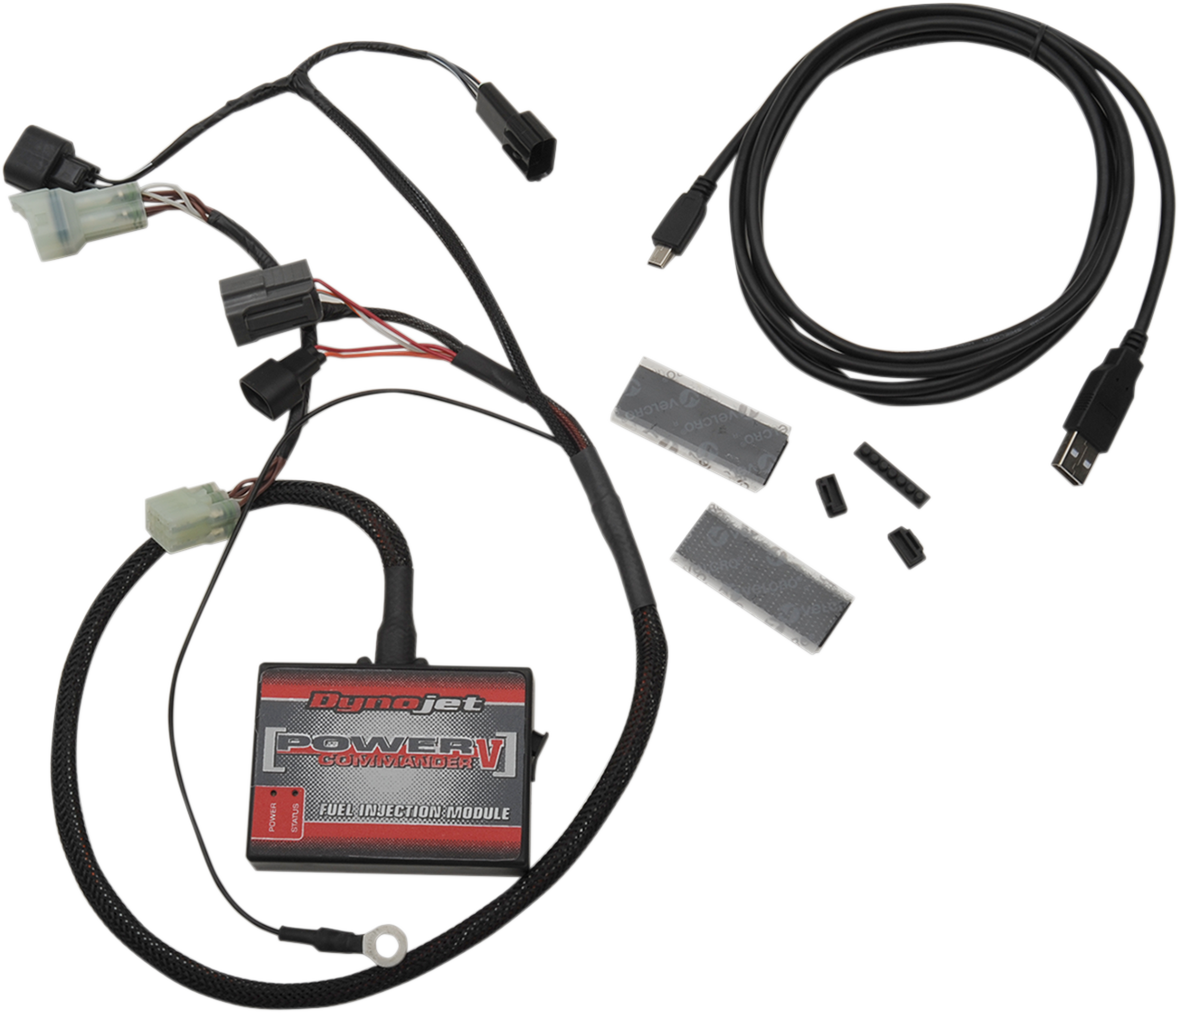 Moose Offroad Power Commander V Fuel Injection Module for 17-20 Honda CRF450 R/X